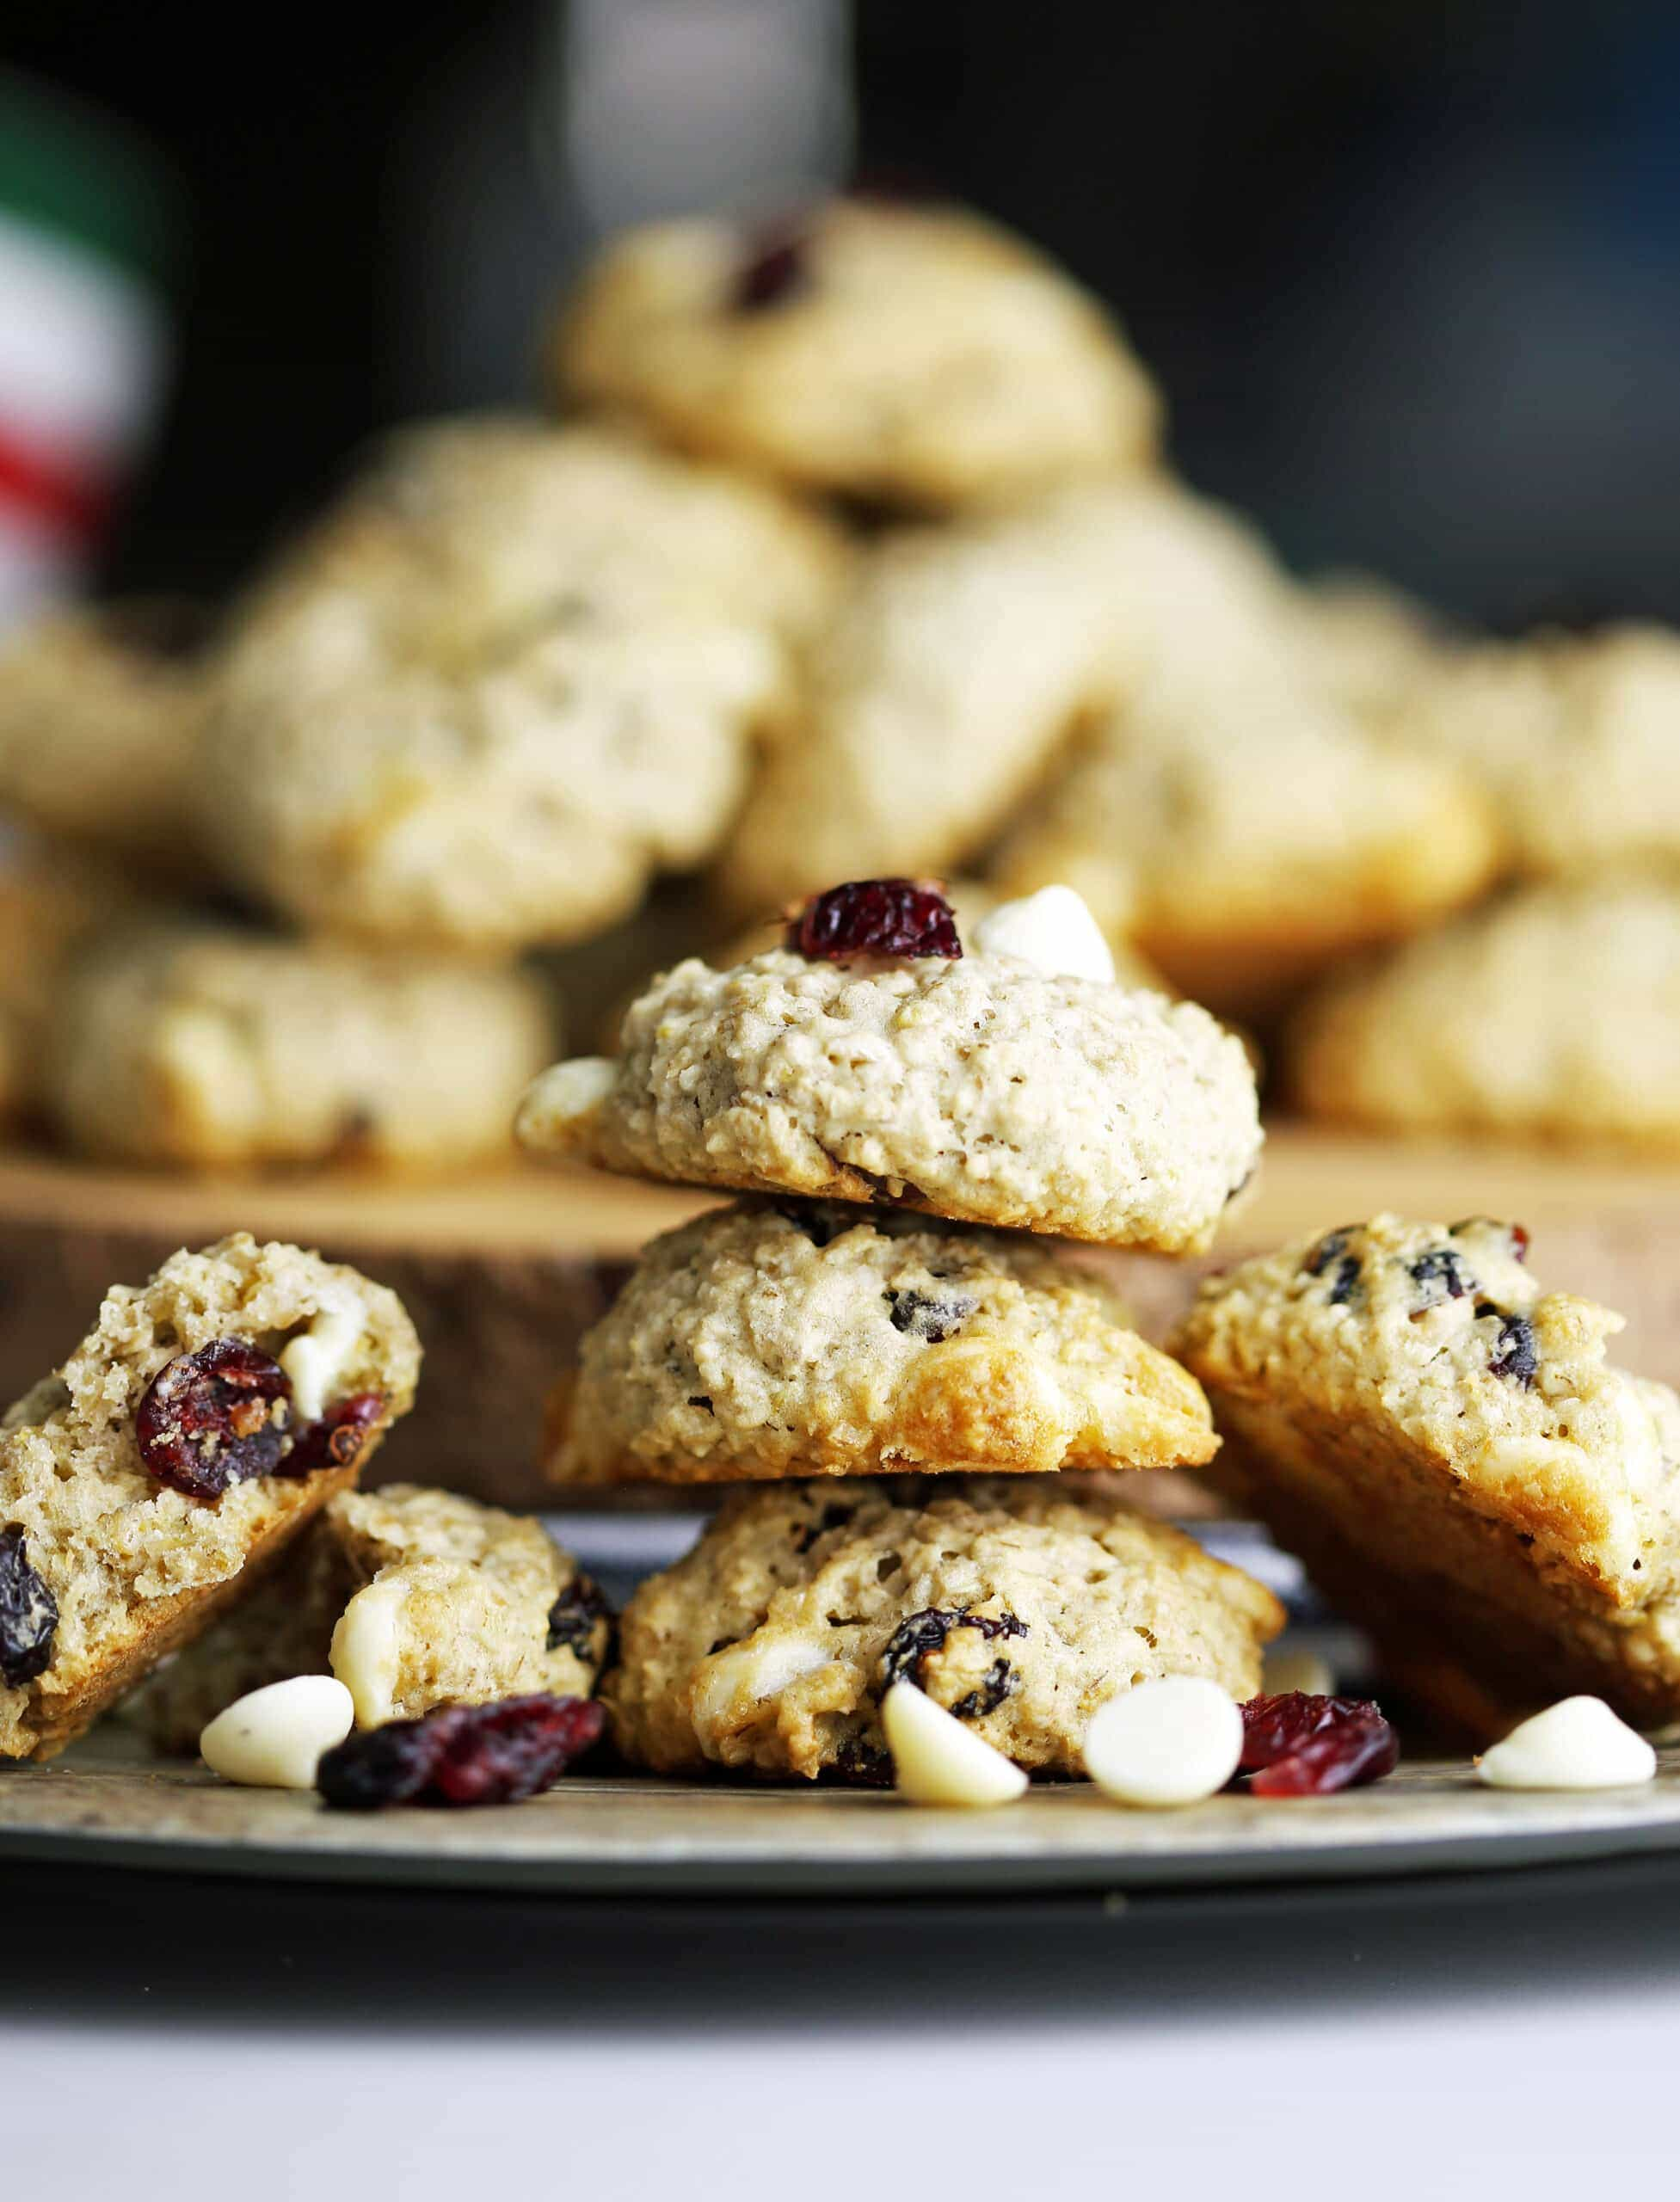 Three white chocolate cranberry oatmeal cookies on top of one another with more cookies piled high behind them.